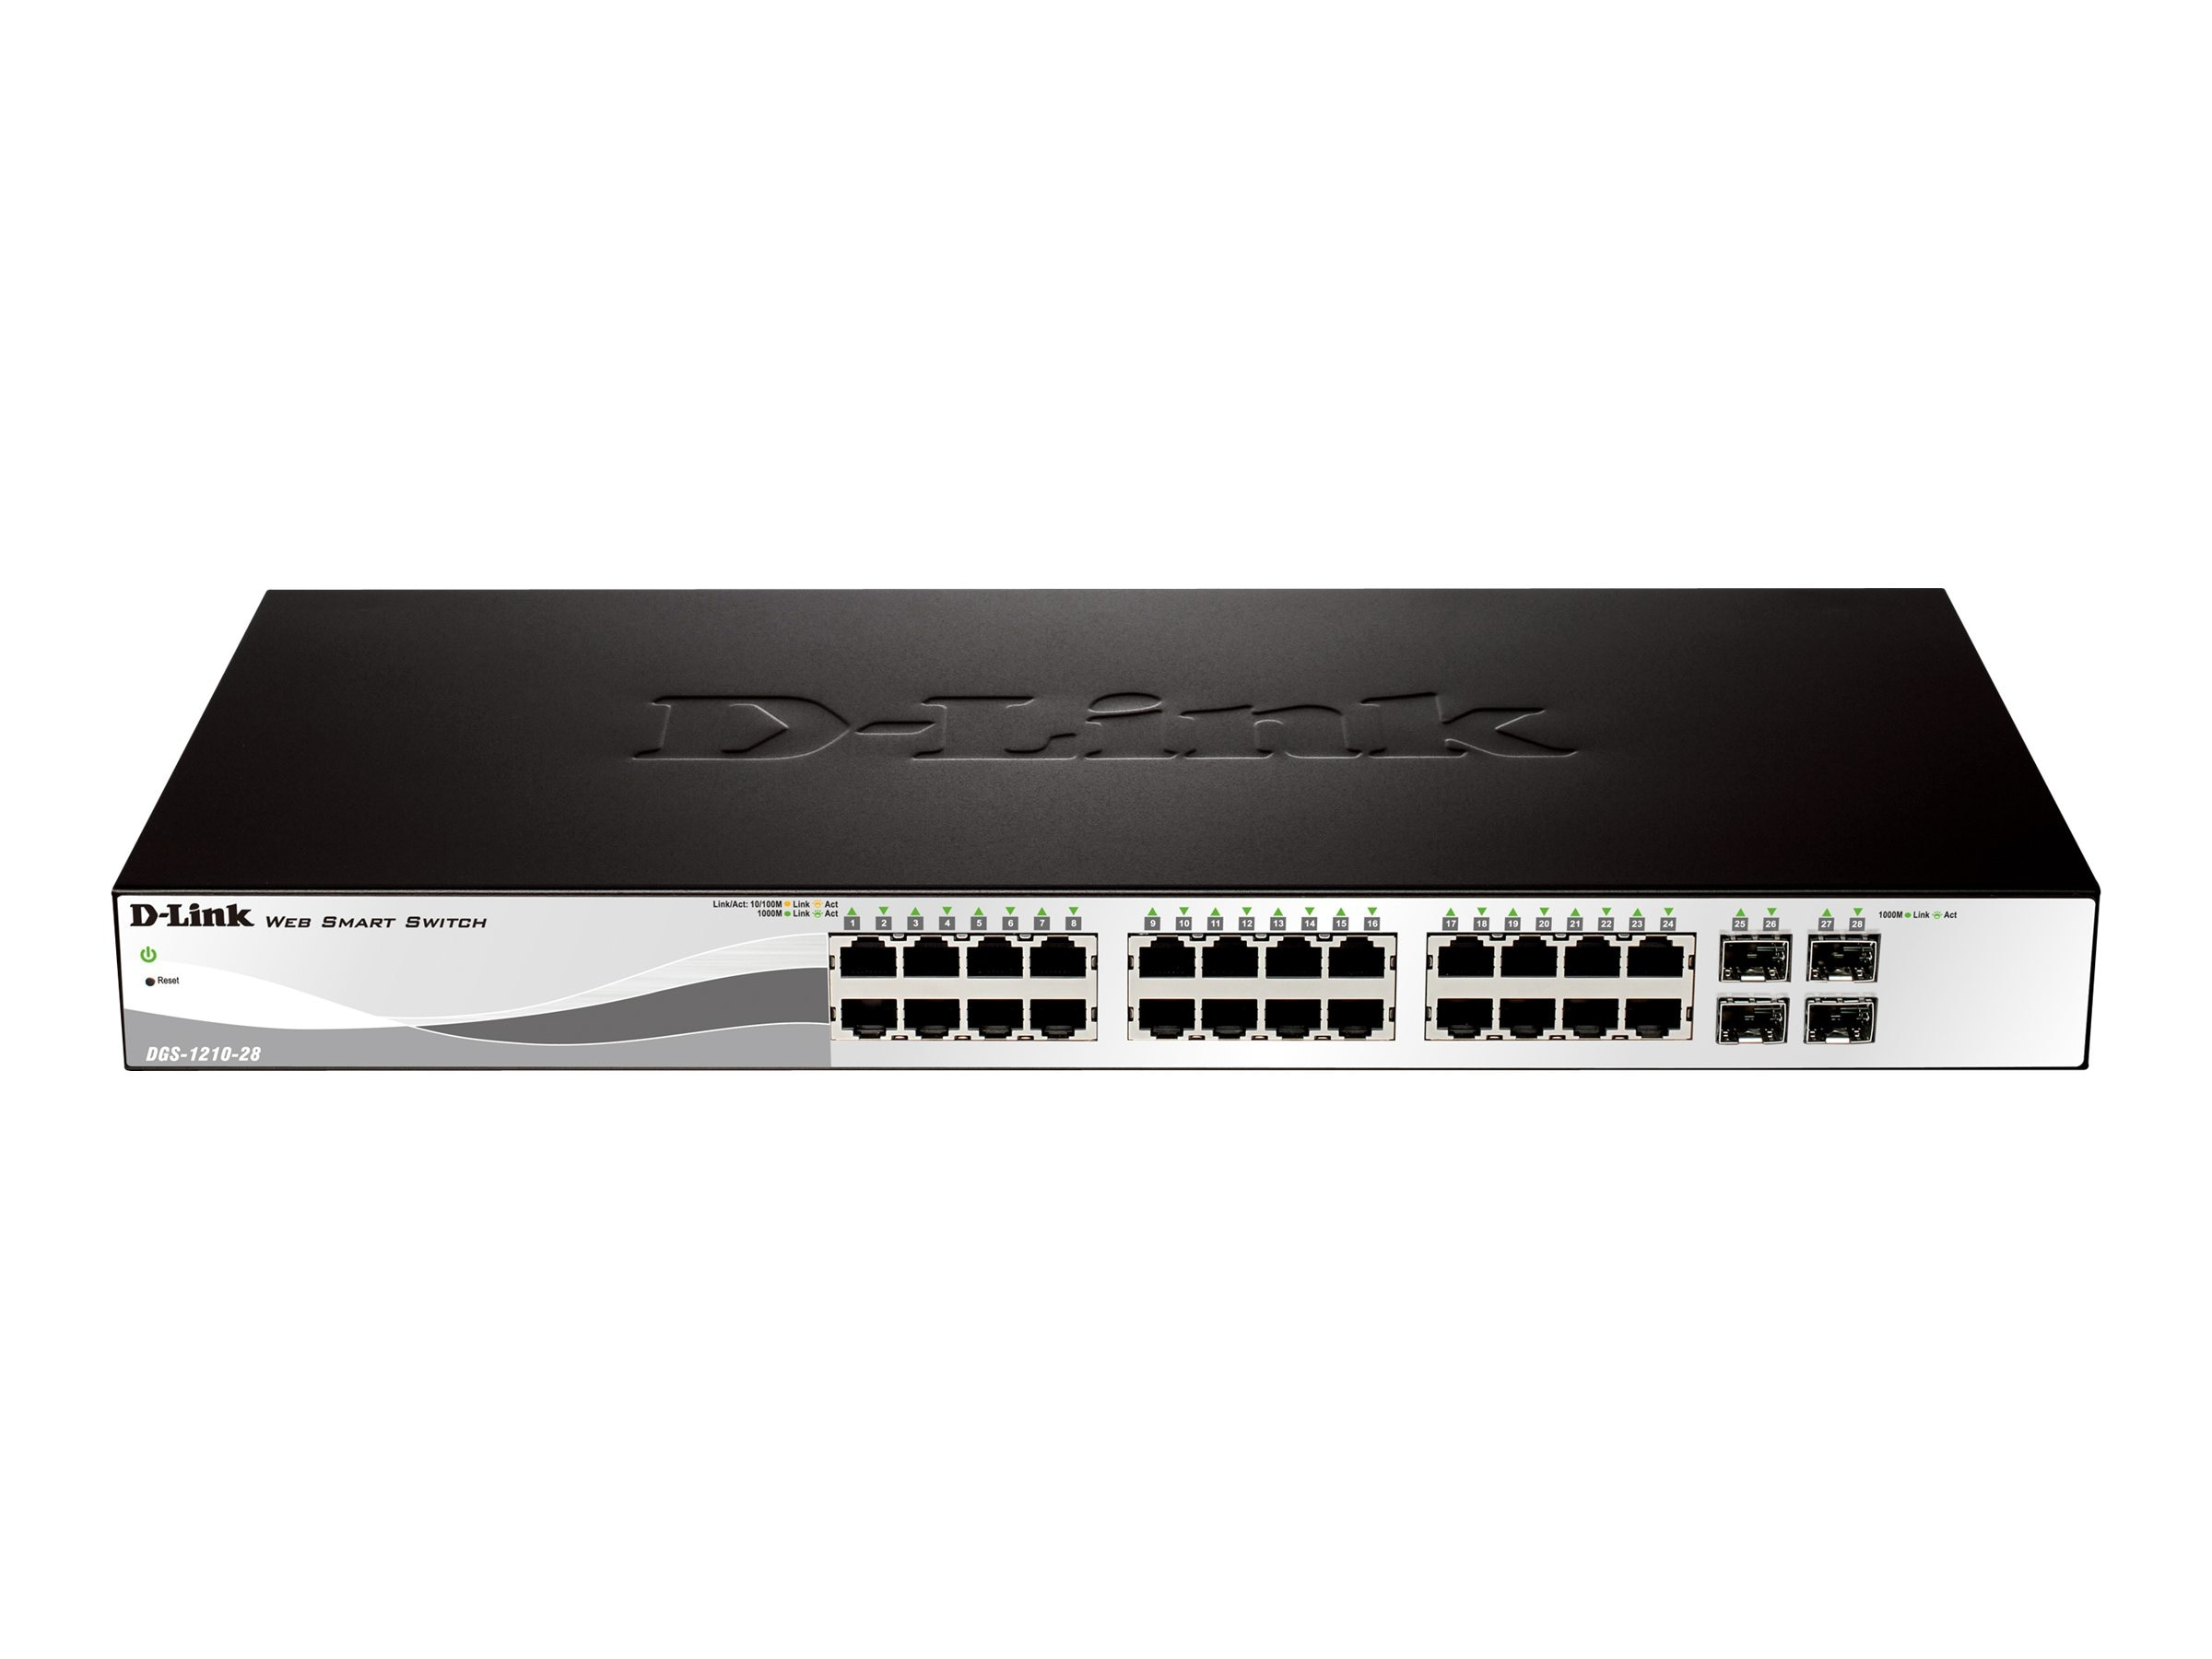 D-Link 24 Port Gig Web Smart Switch